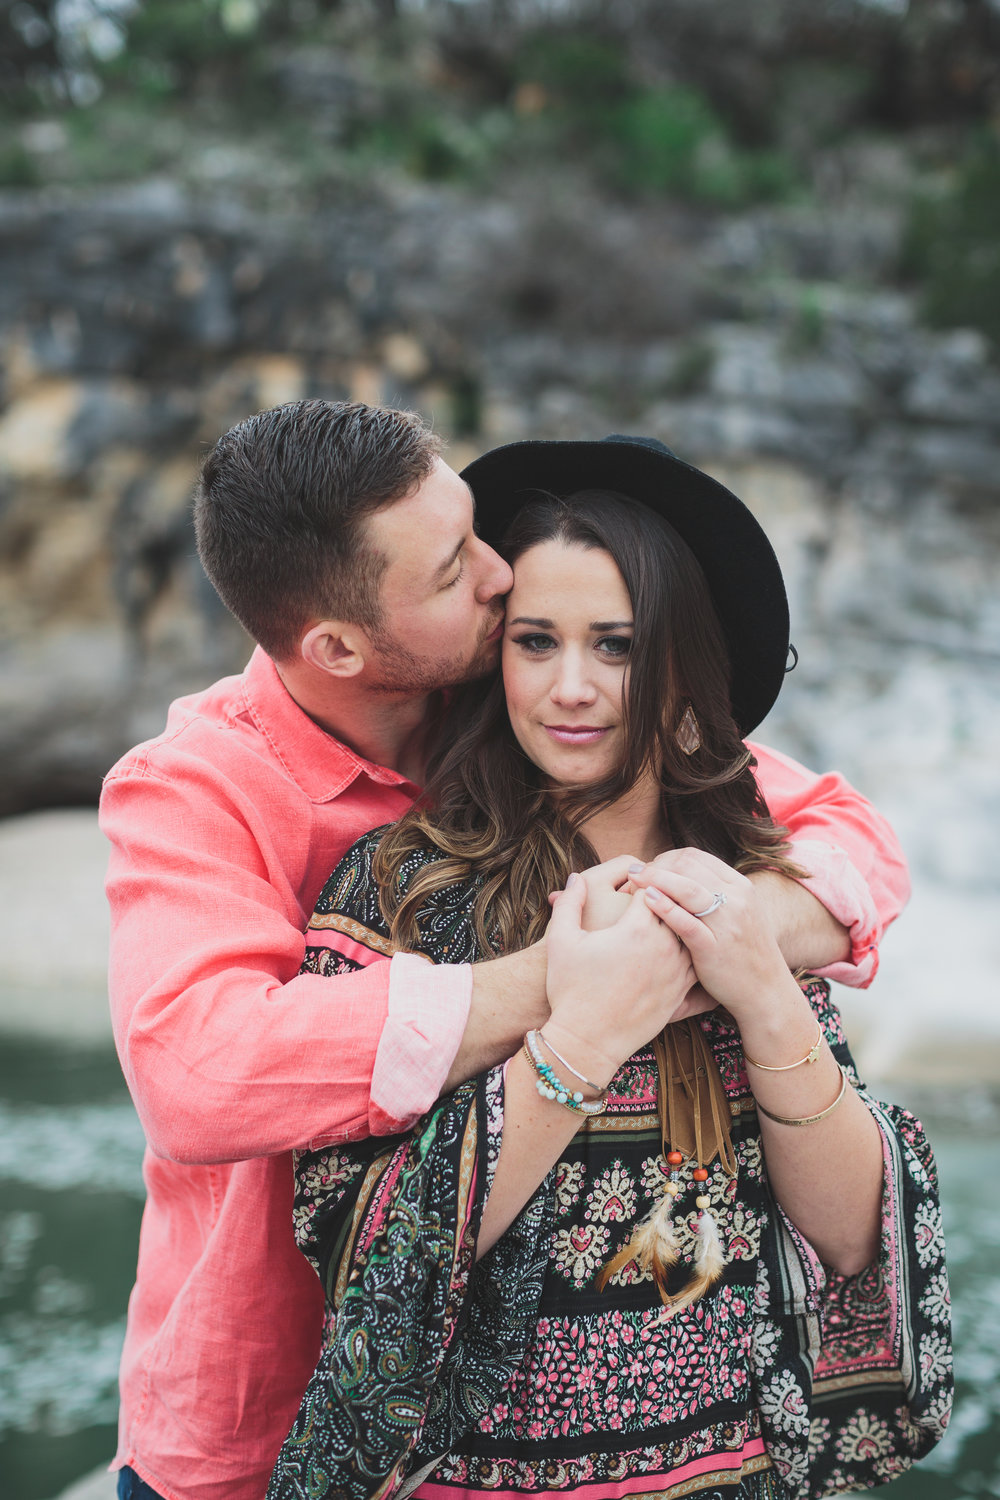 pedernales_engagement_session_16